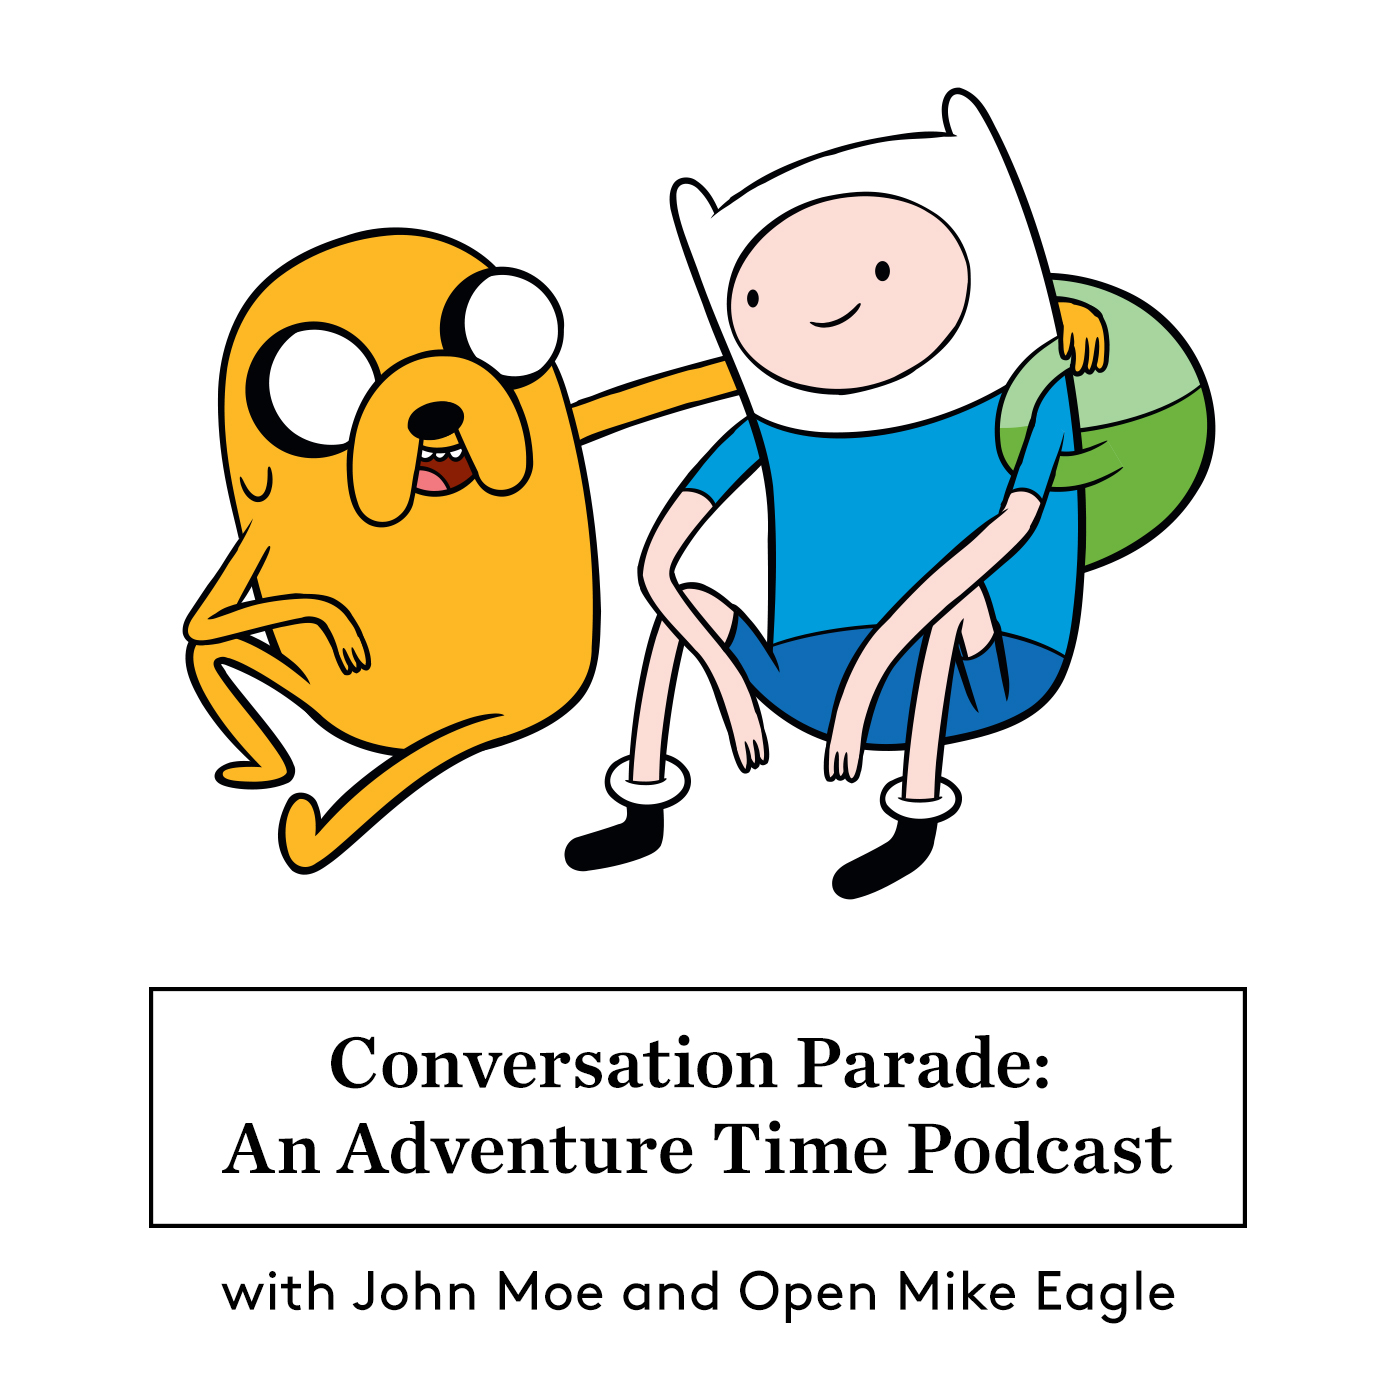 Conversation Parade: An Adventure Time Podcast – Infinite Guest Podcast Network